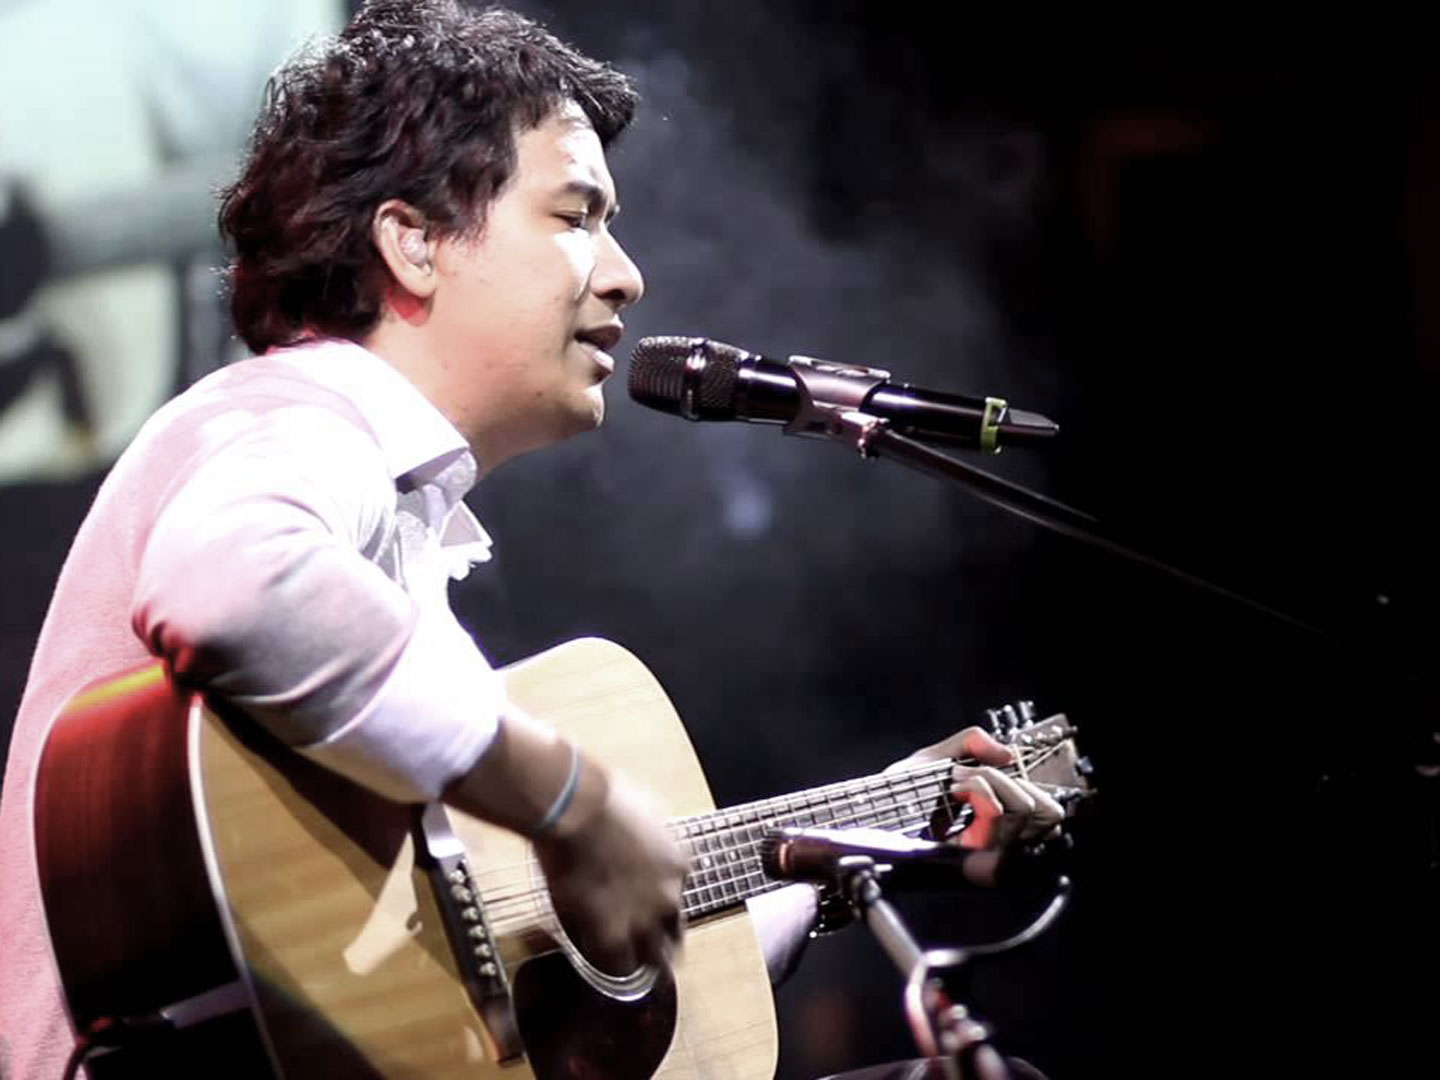 Ely Buendia performing live with his guitar